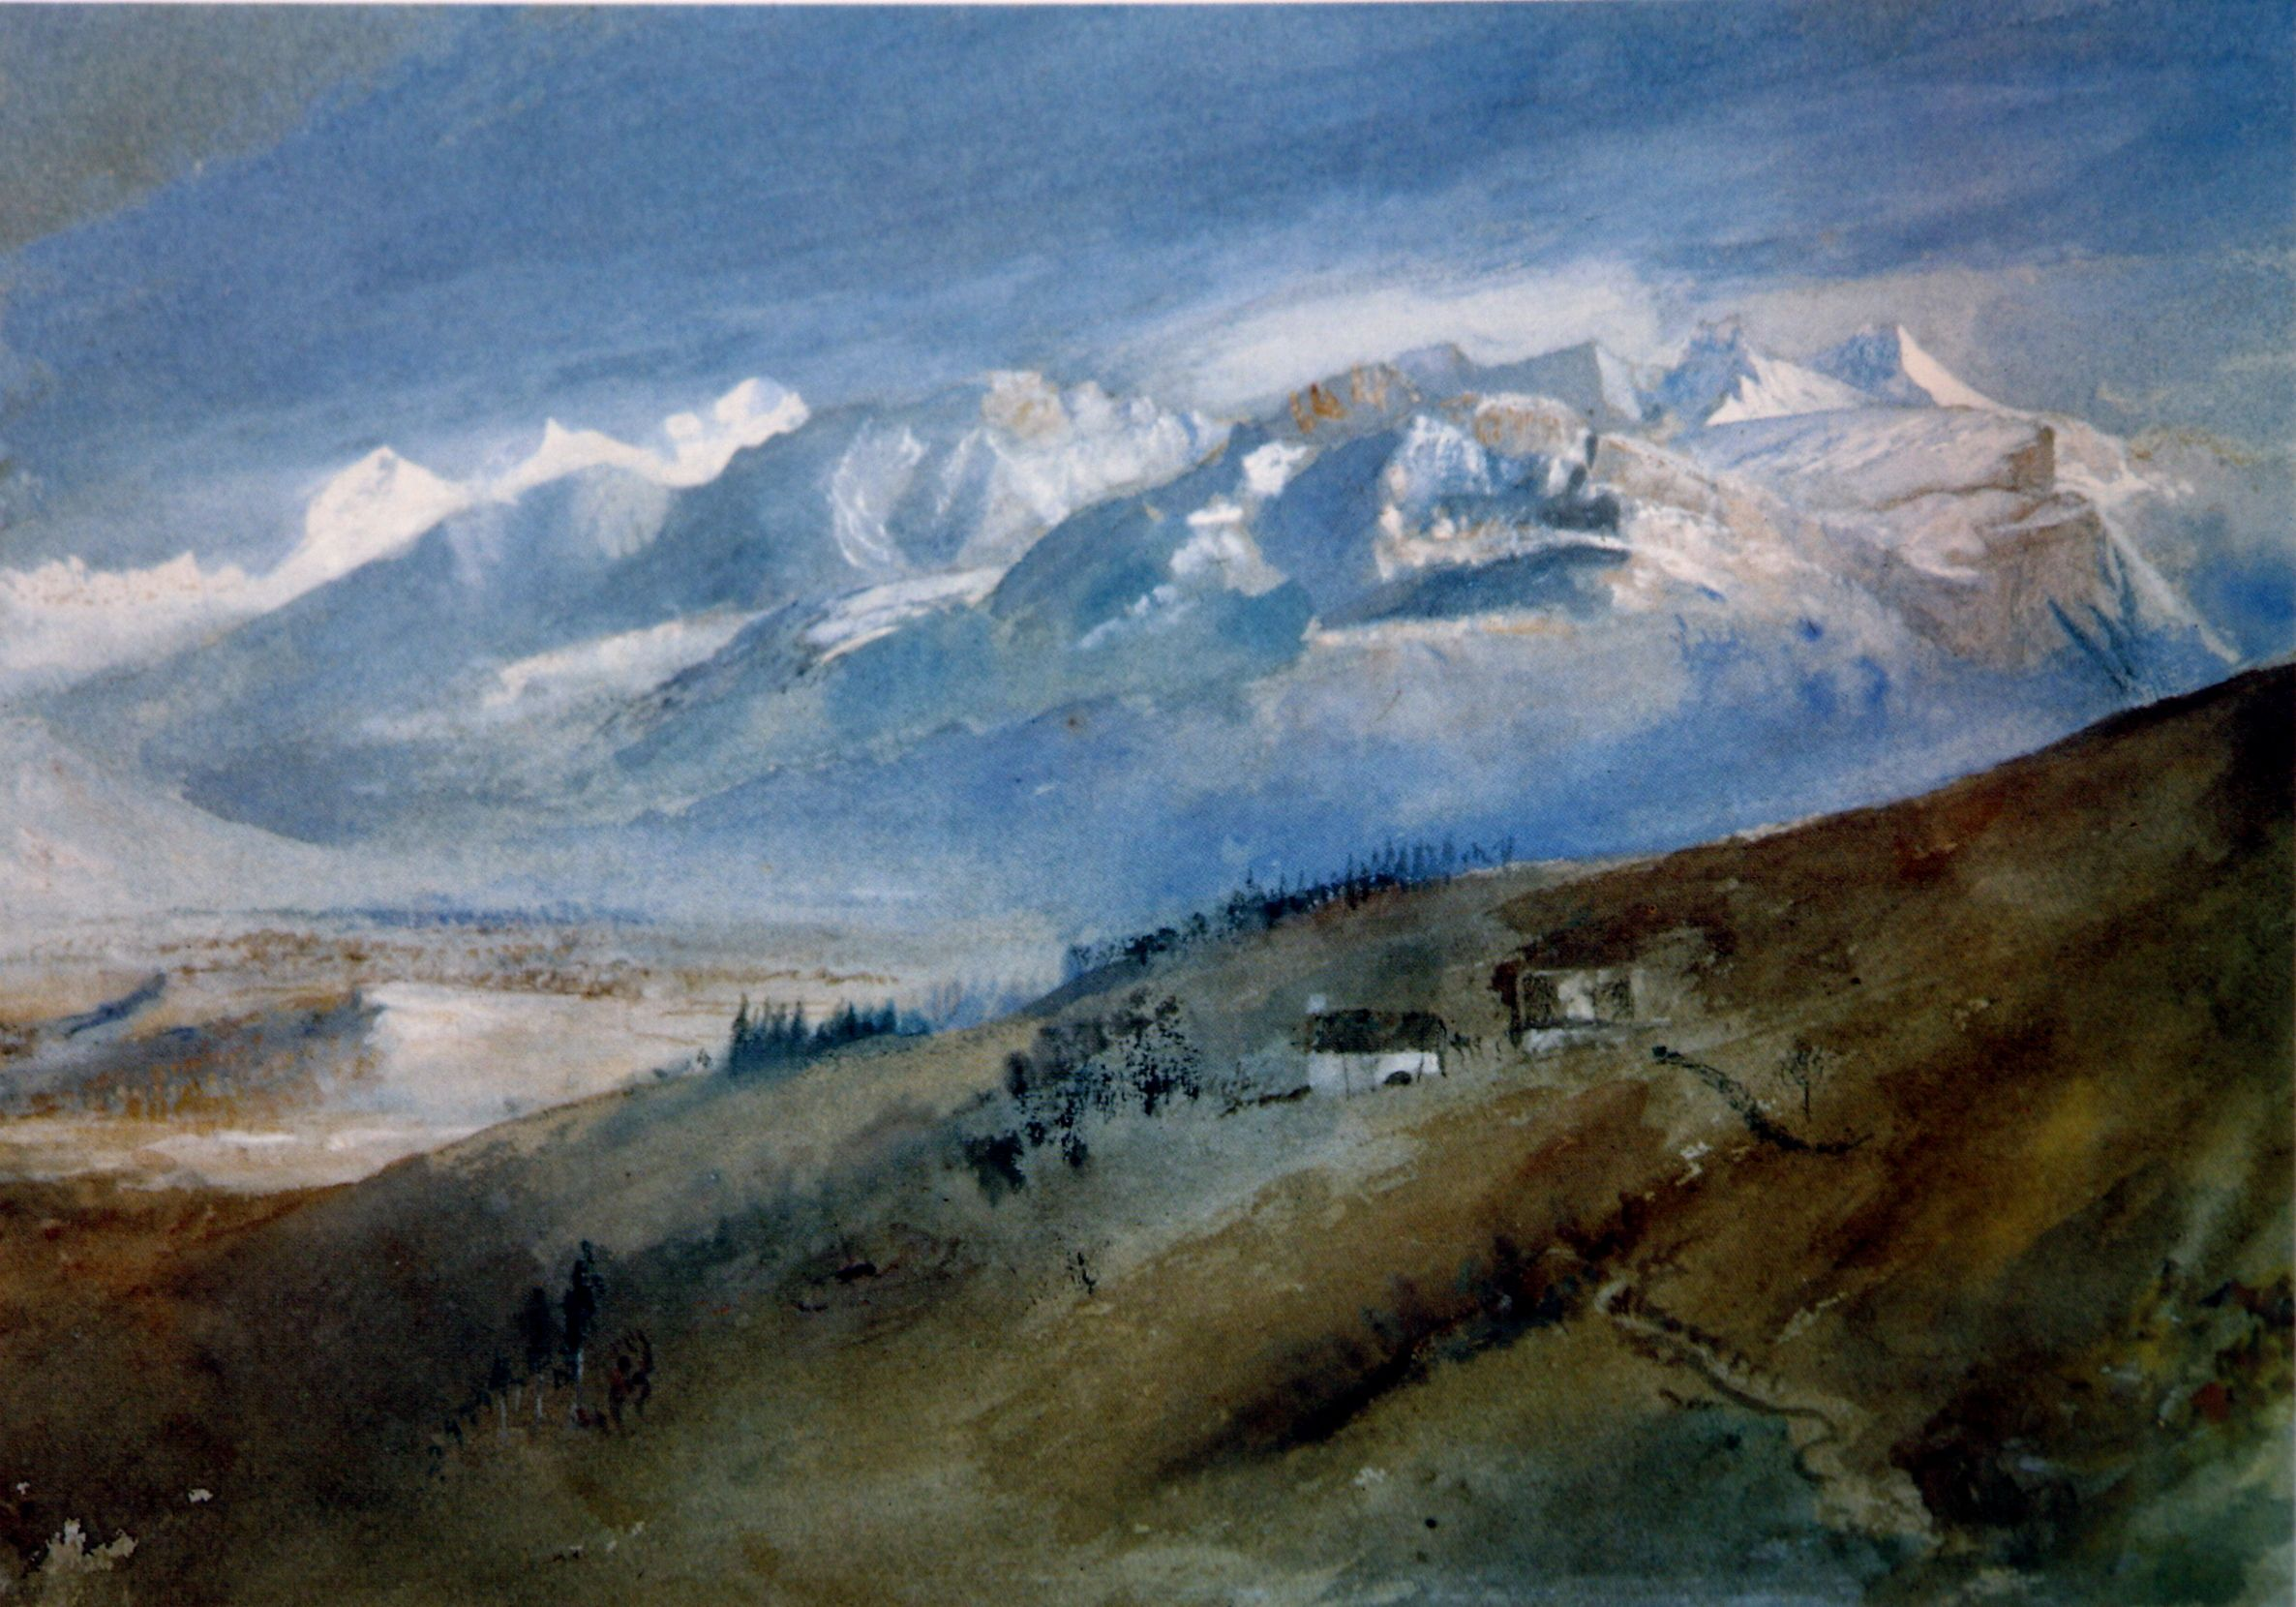 John Ruskin, View from my Window at Mornex, c. 1862-1863